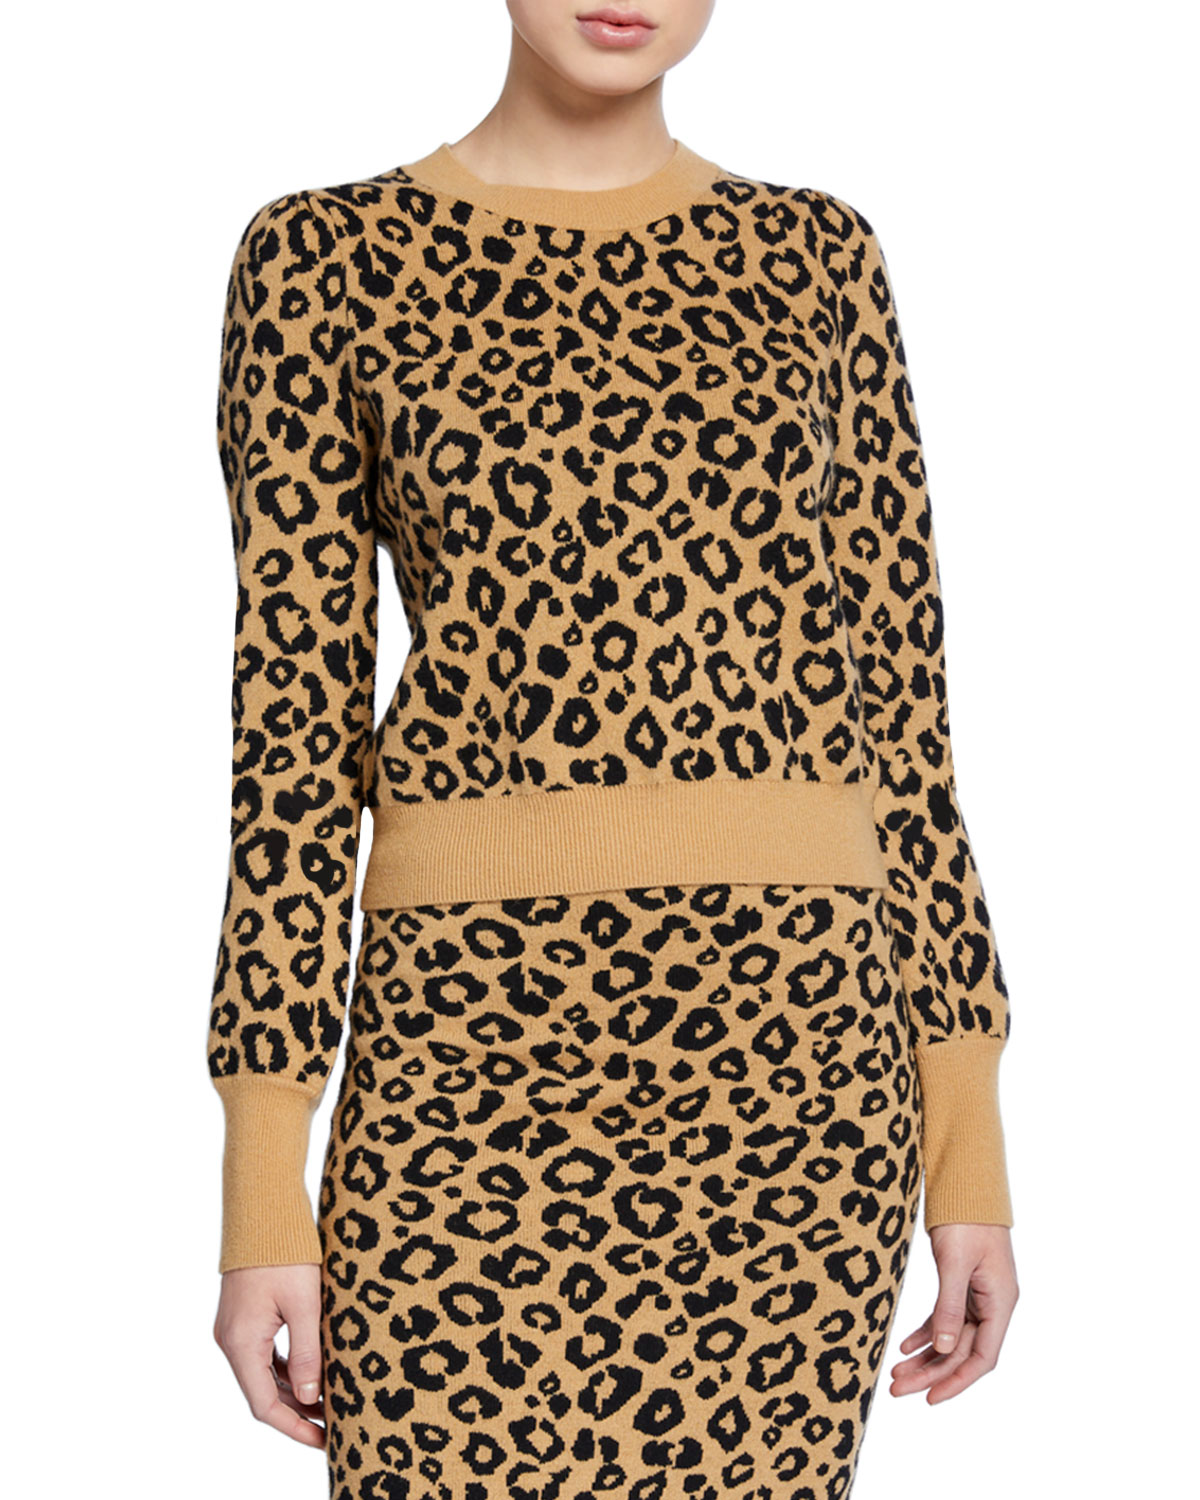 Veronica Beard Sweaters PENNY LEOPARD-PRINT PULLOVER SWEATER